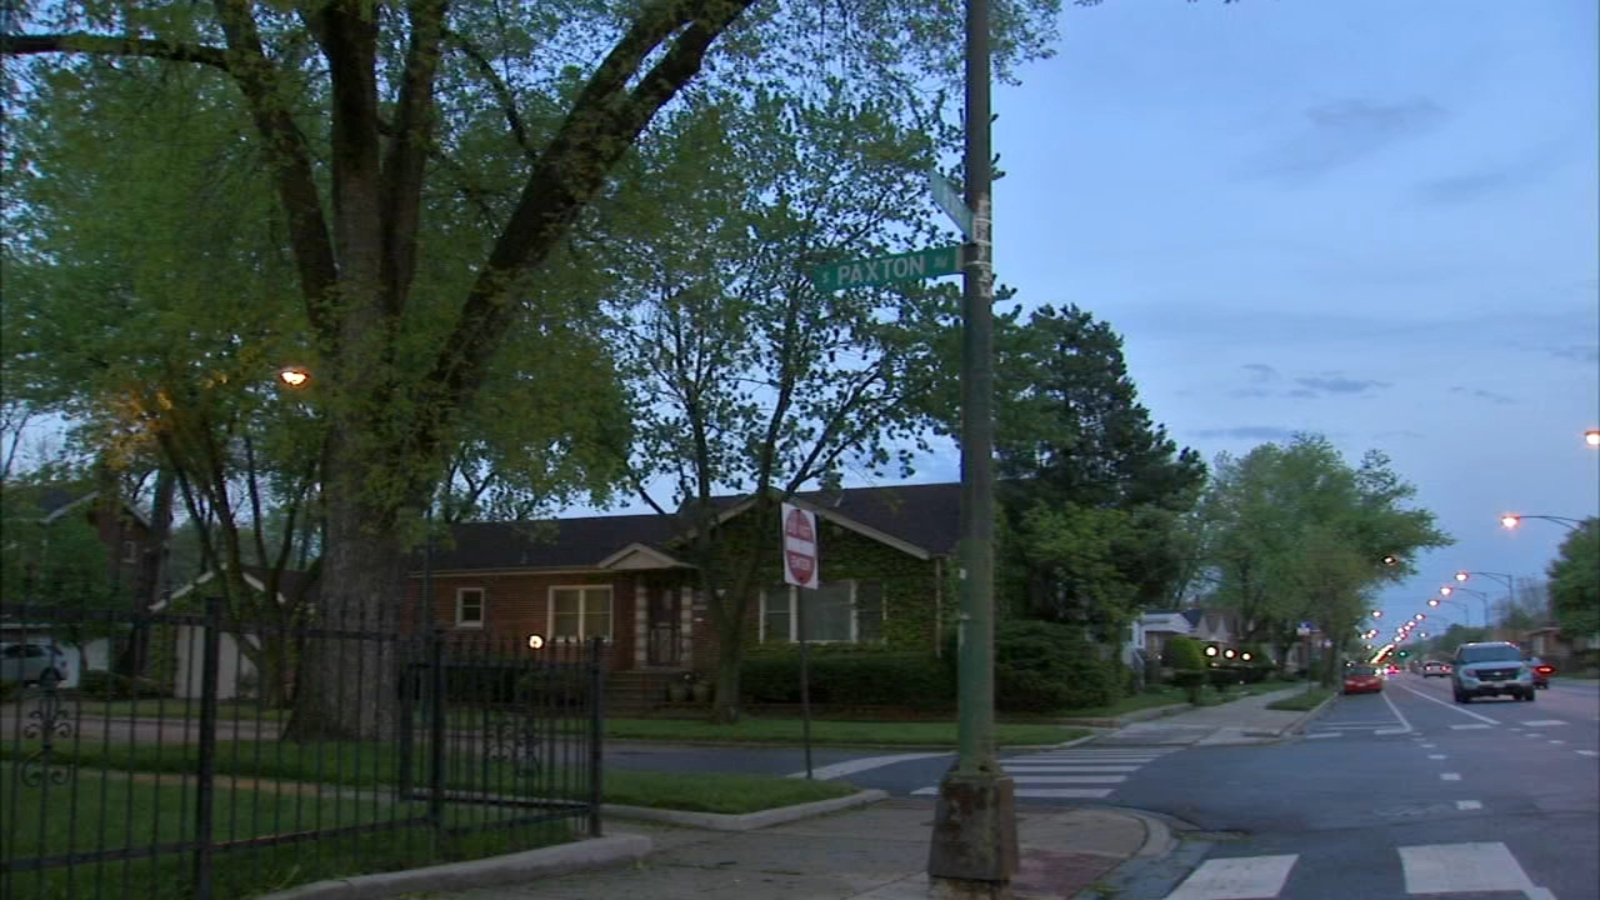 15 shot, 4 fatally, in Chicago weekend shootings